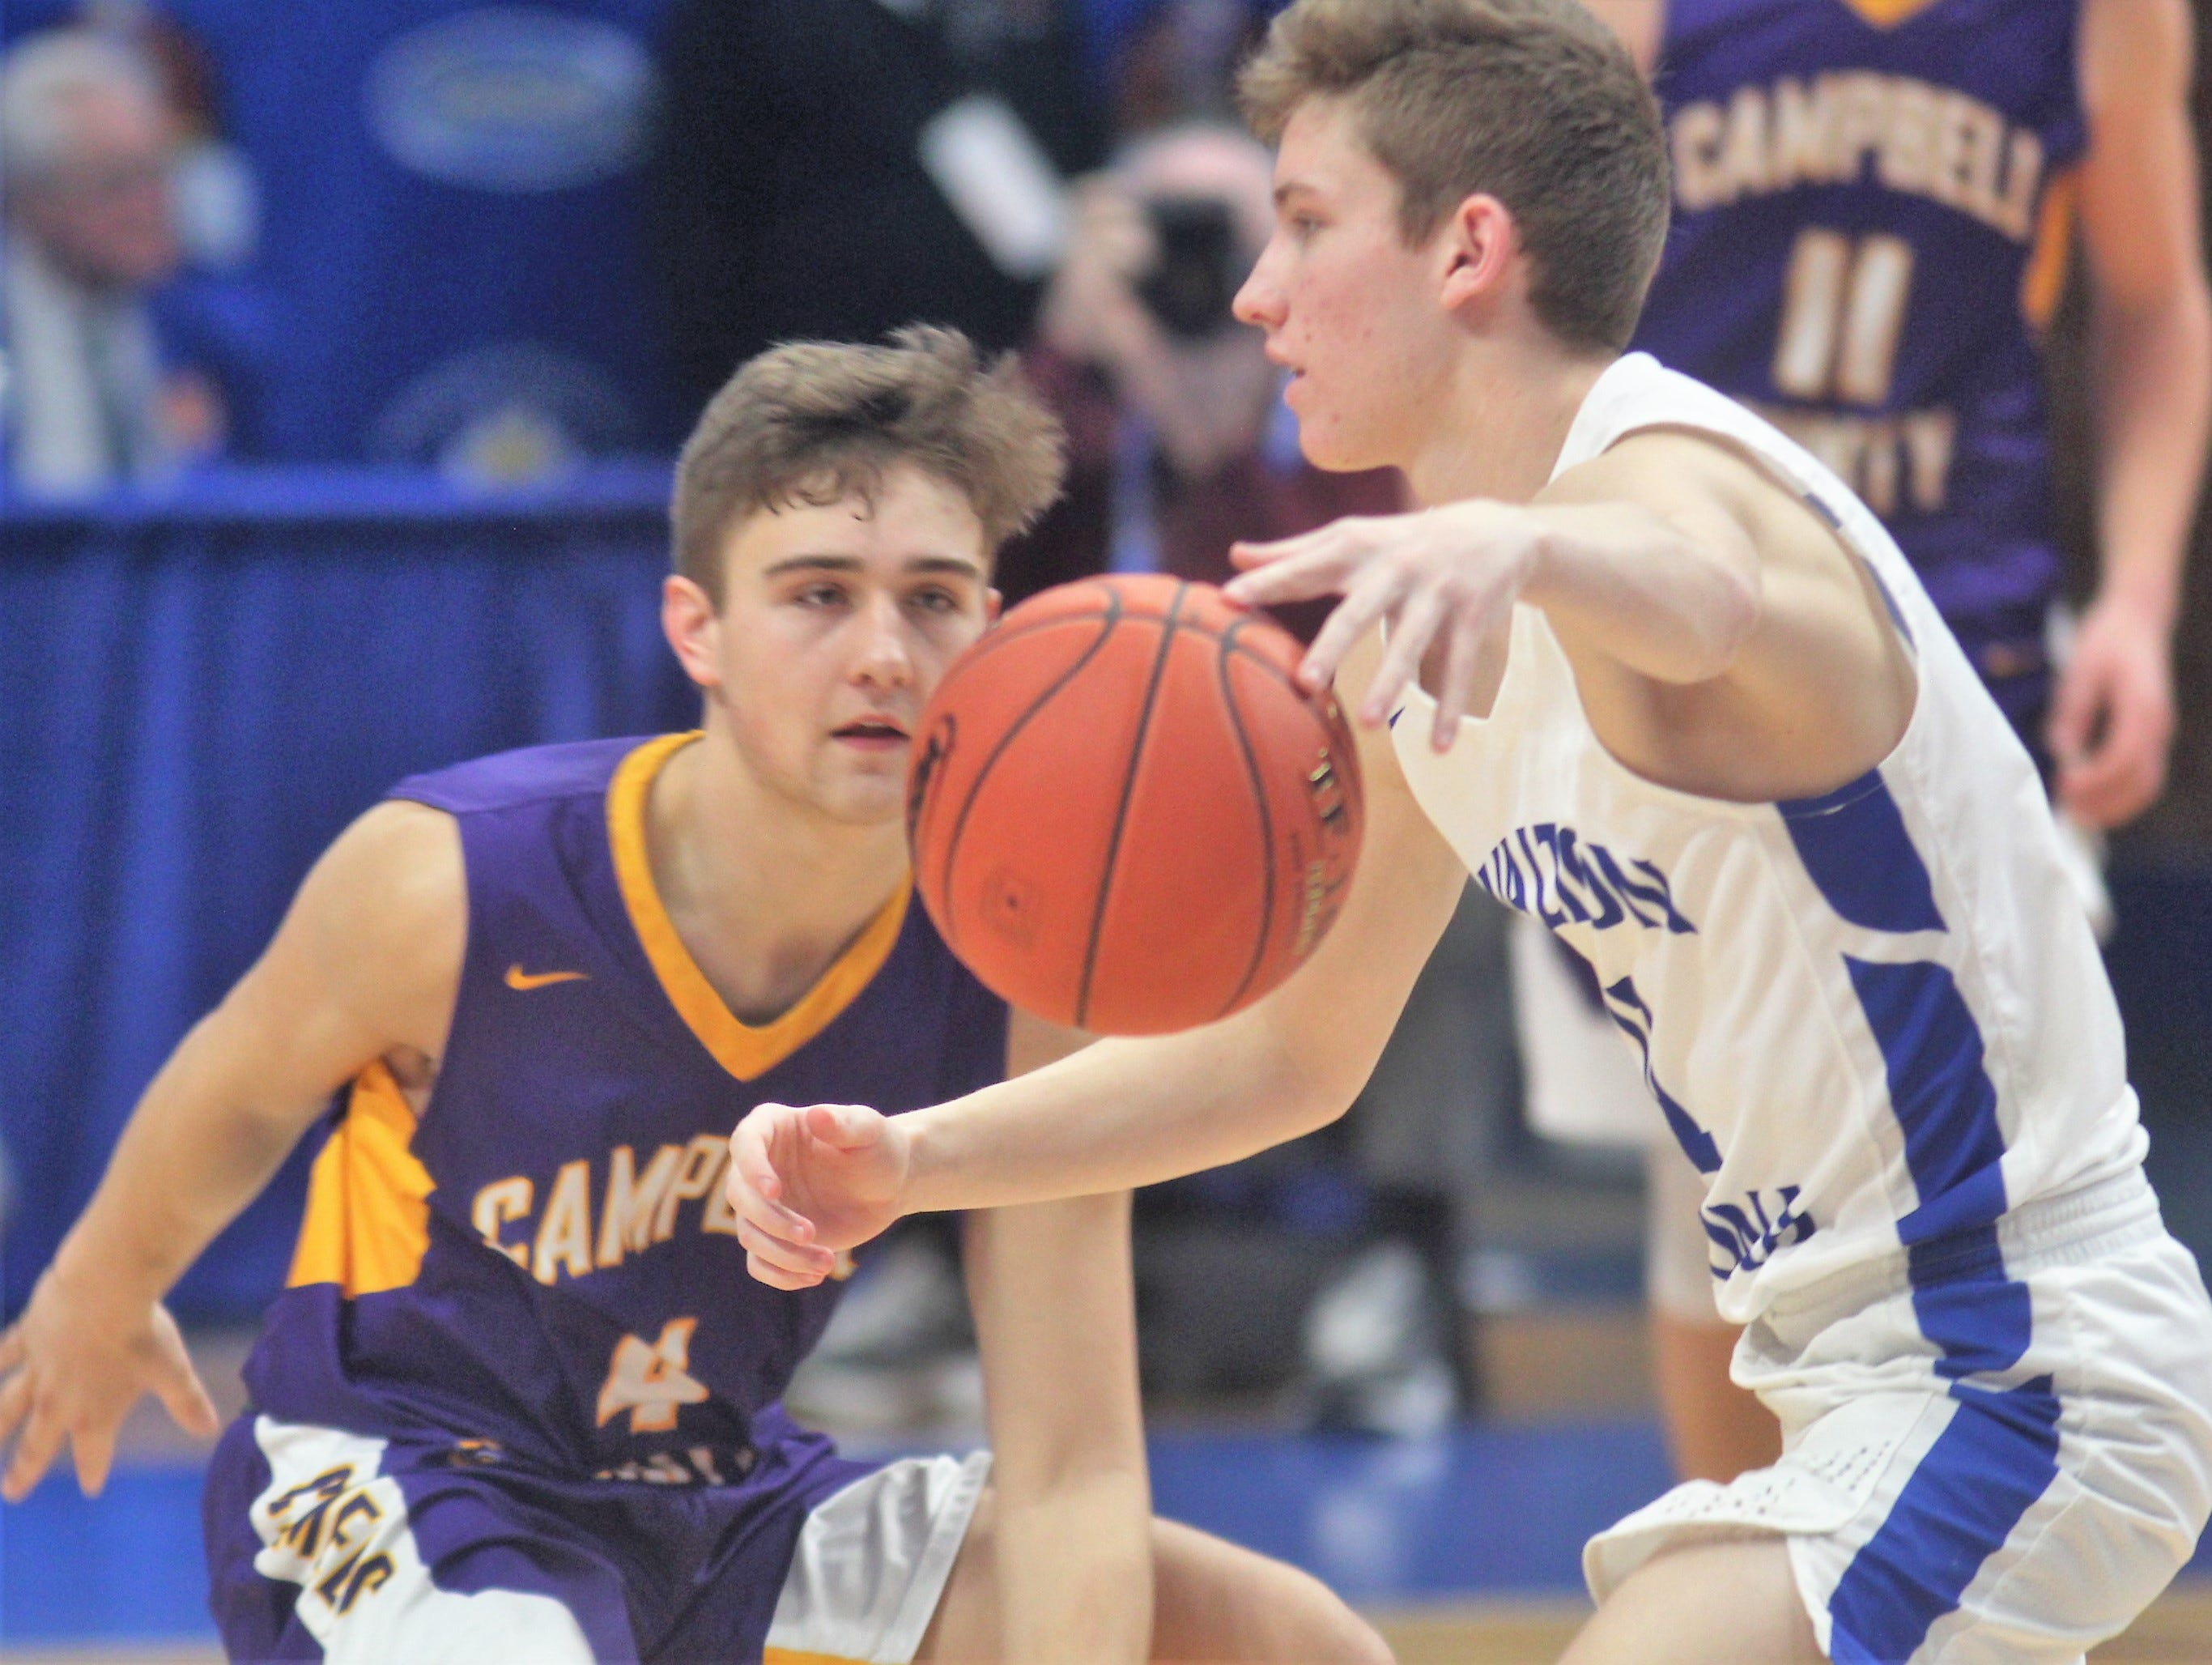 Campbell County senior Drew Wilson keeps an eye on Walton-Verona senior Trey Bonne as Campbell County defeated Walton-Verona 49-42 in the state quarterfinals of the Whitaker Bank/KHSAA Boys Basketball Sweet 16 March 8, 2019, at Rupp Arena.